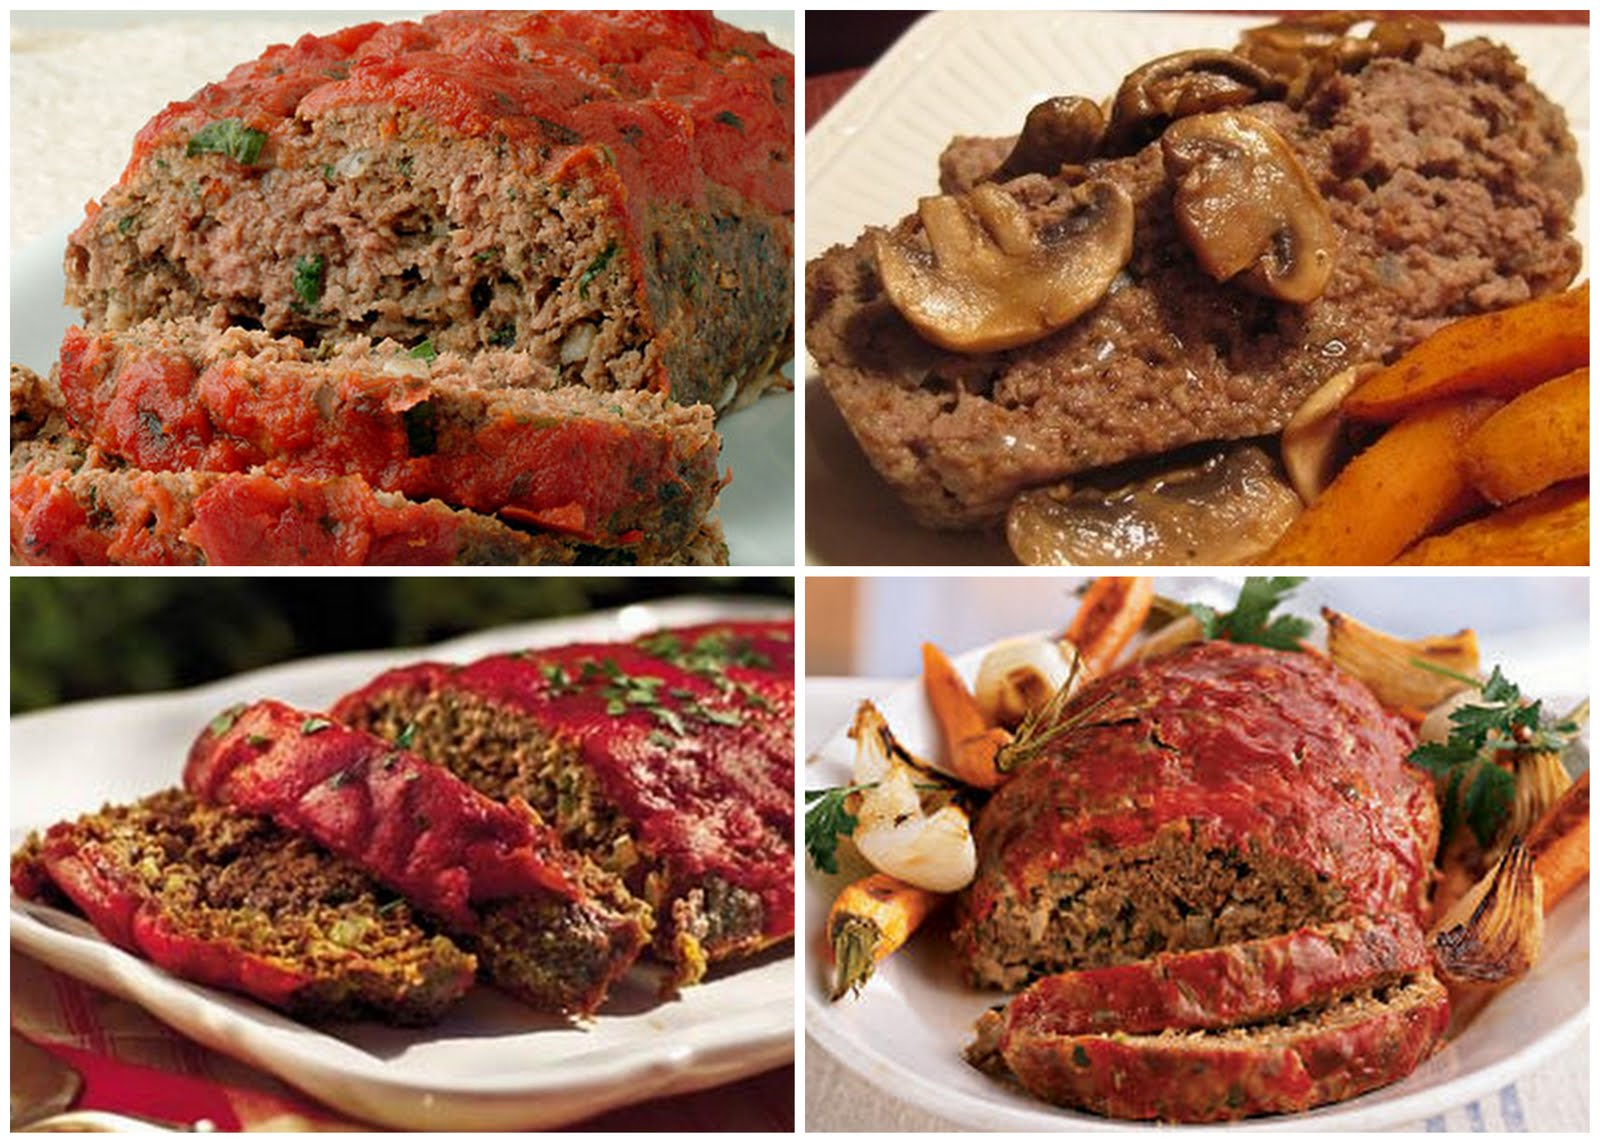 Global Around Town: The Best Meatloaf In The World